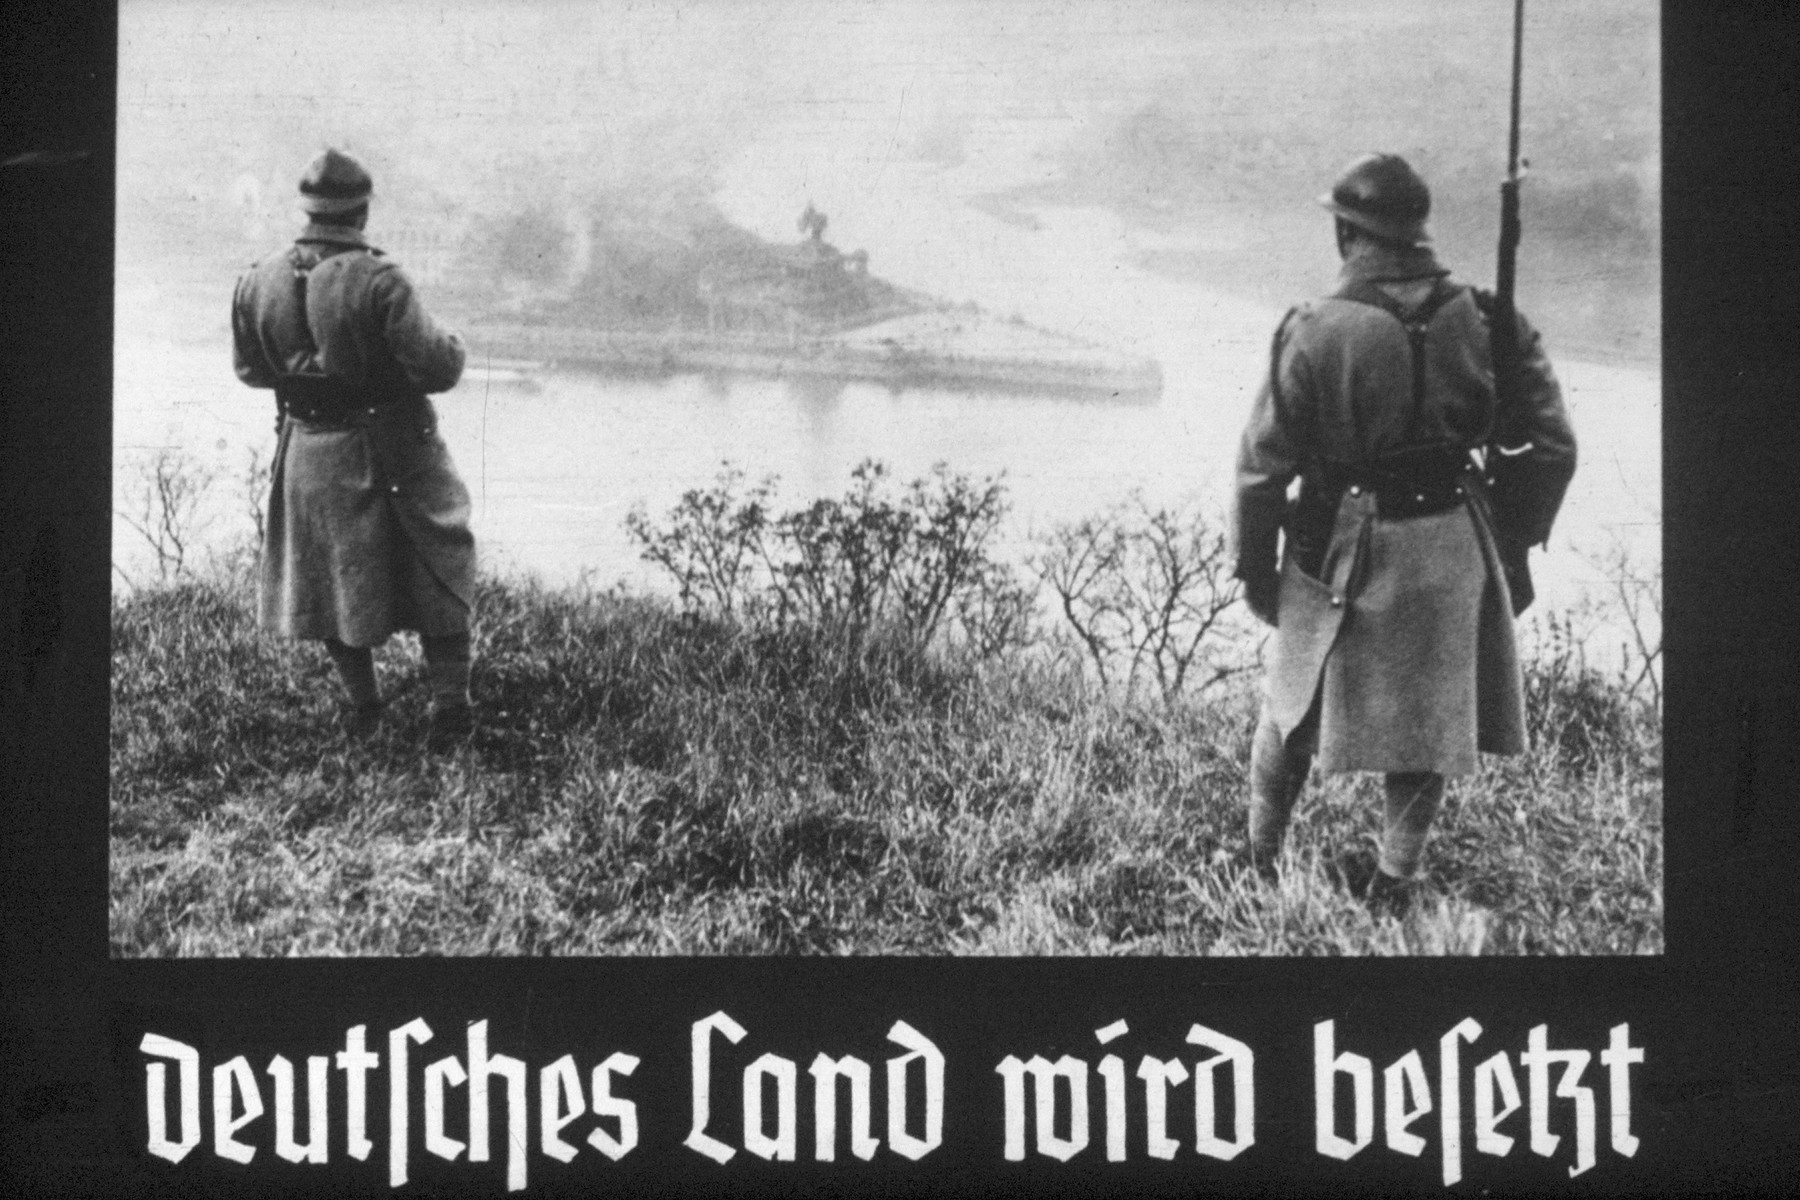 29th slide from a Hitler Youth slideshow about the aftermath of WWI, Versailles, how it was overcome and the rise of Nazism.  Deutsches Land wird besetzt. // German land is occupied.